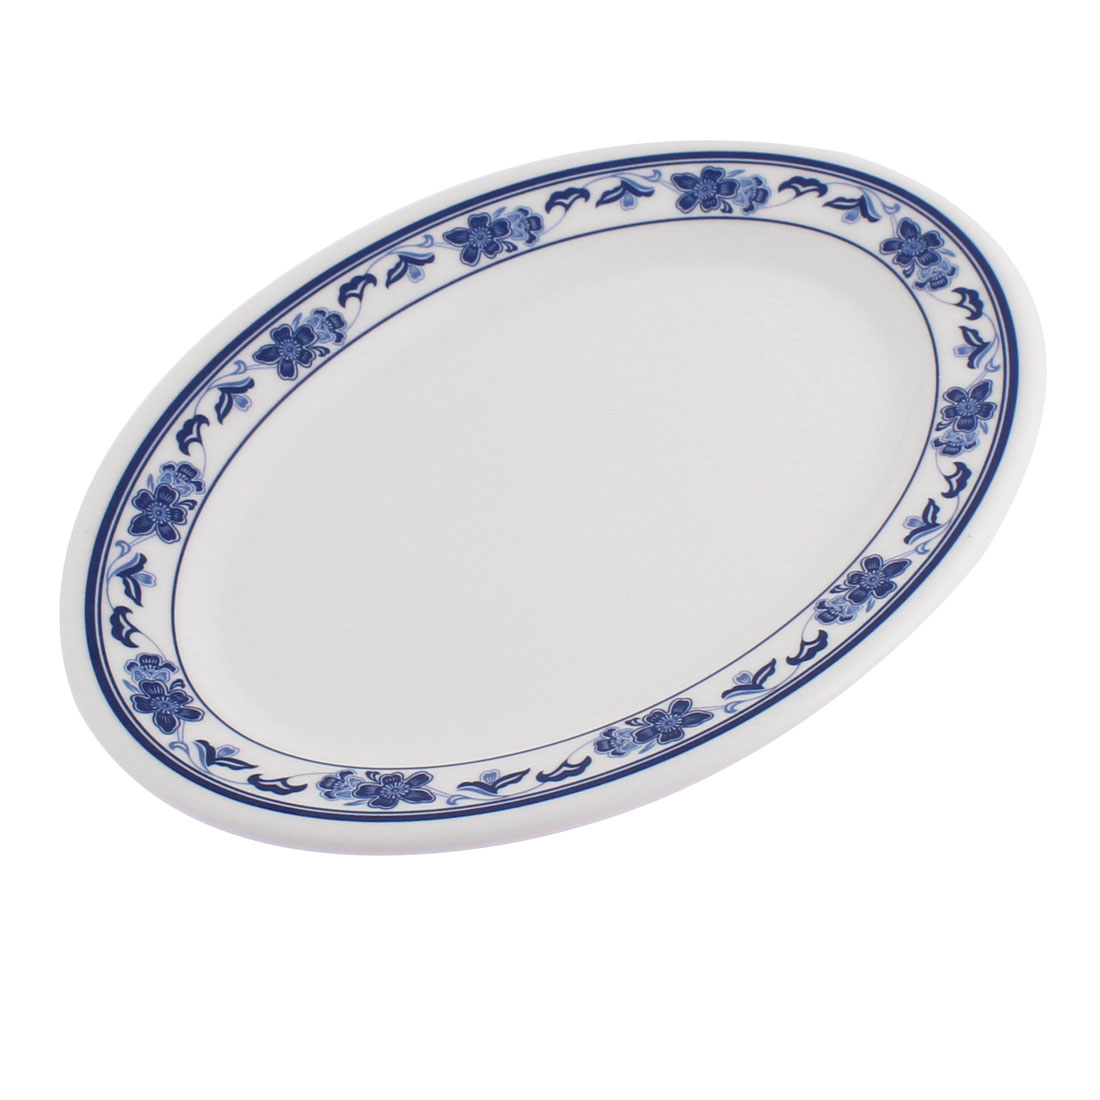 Unique Bargains Plastic Oval Shaped Flower Printed Food Snack Dessert Dish Plate White... by Unique-Bargains